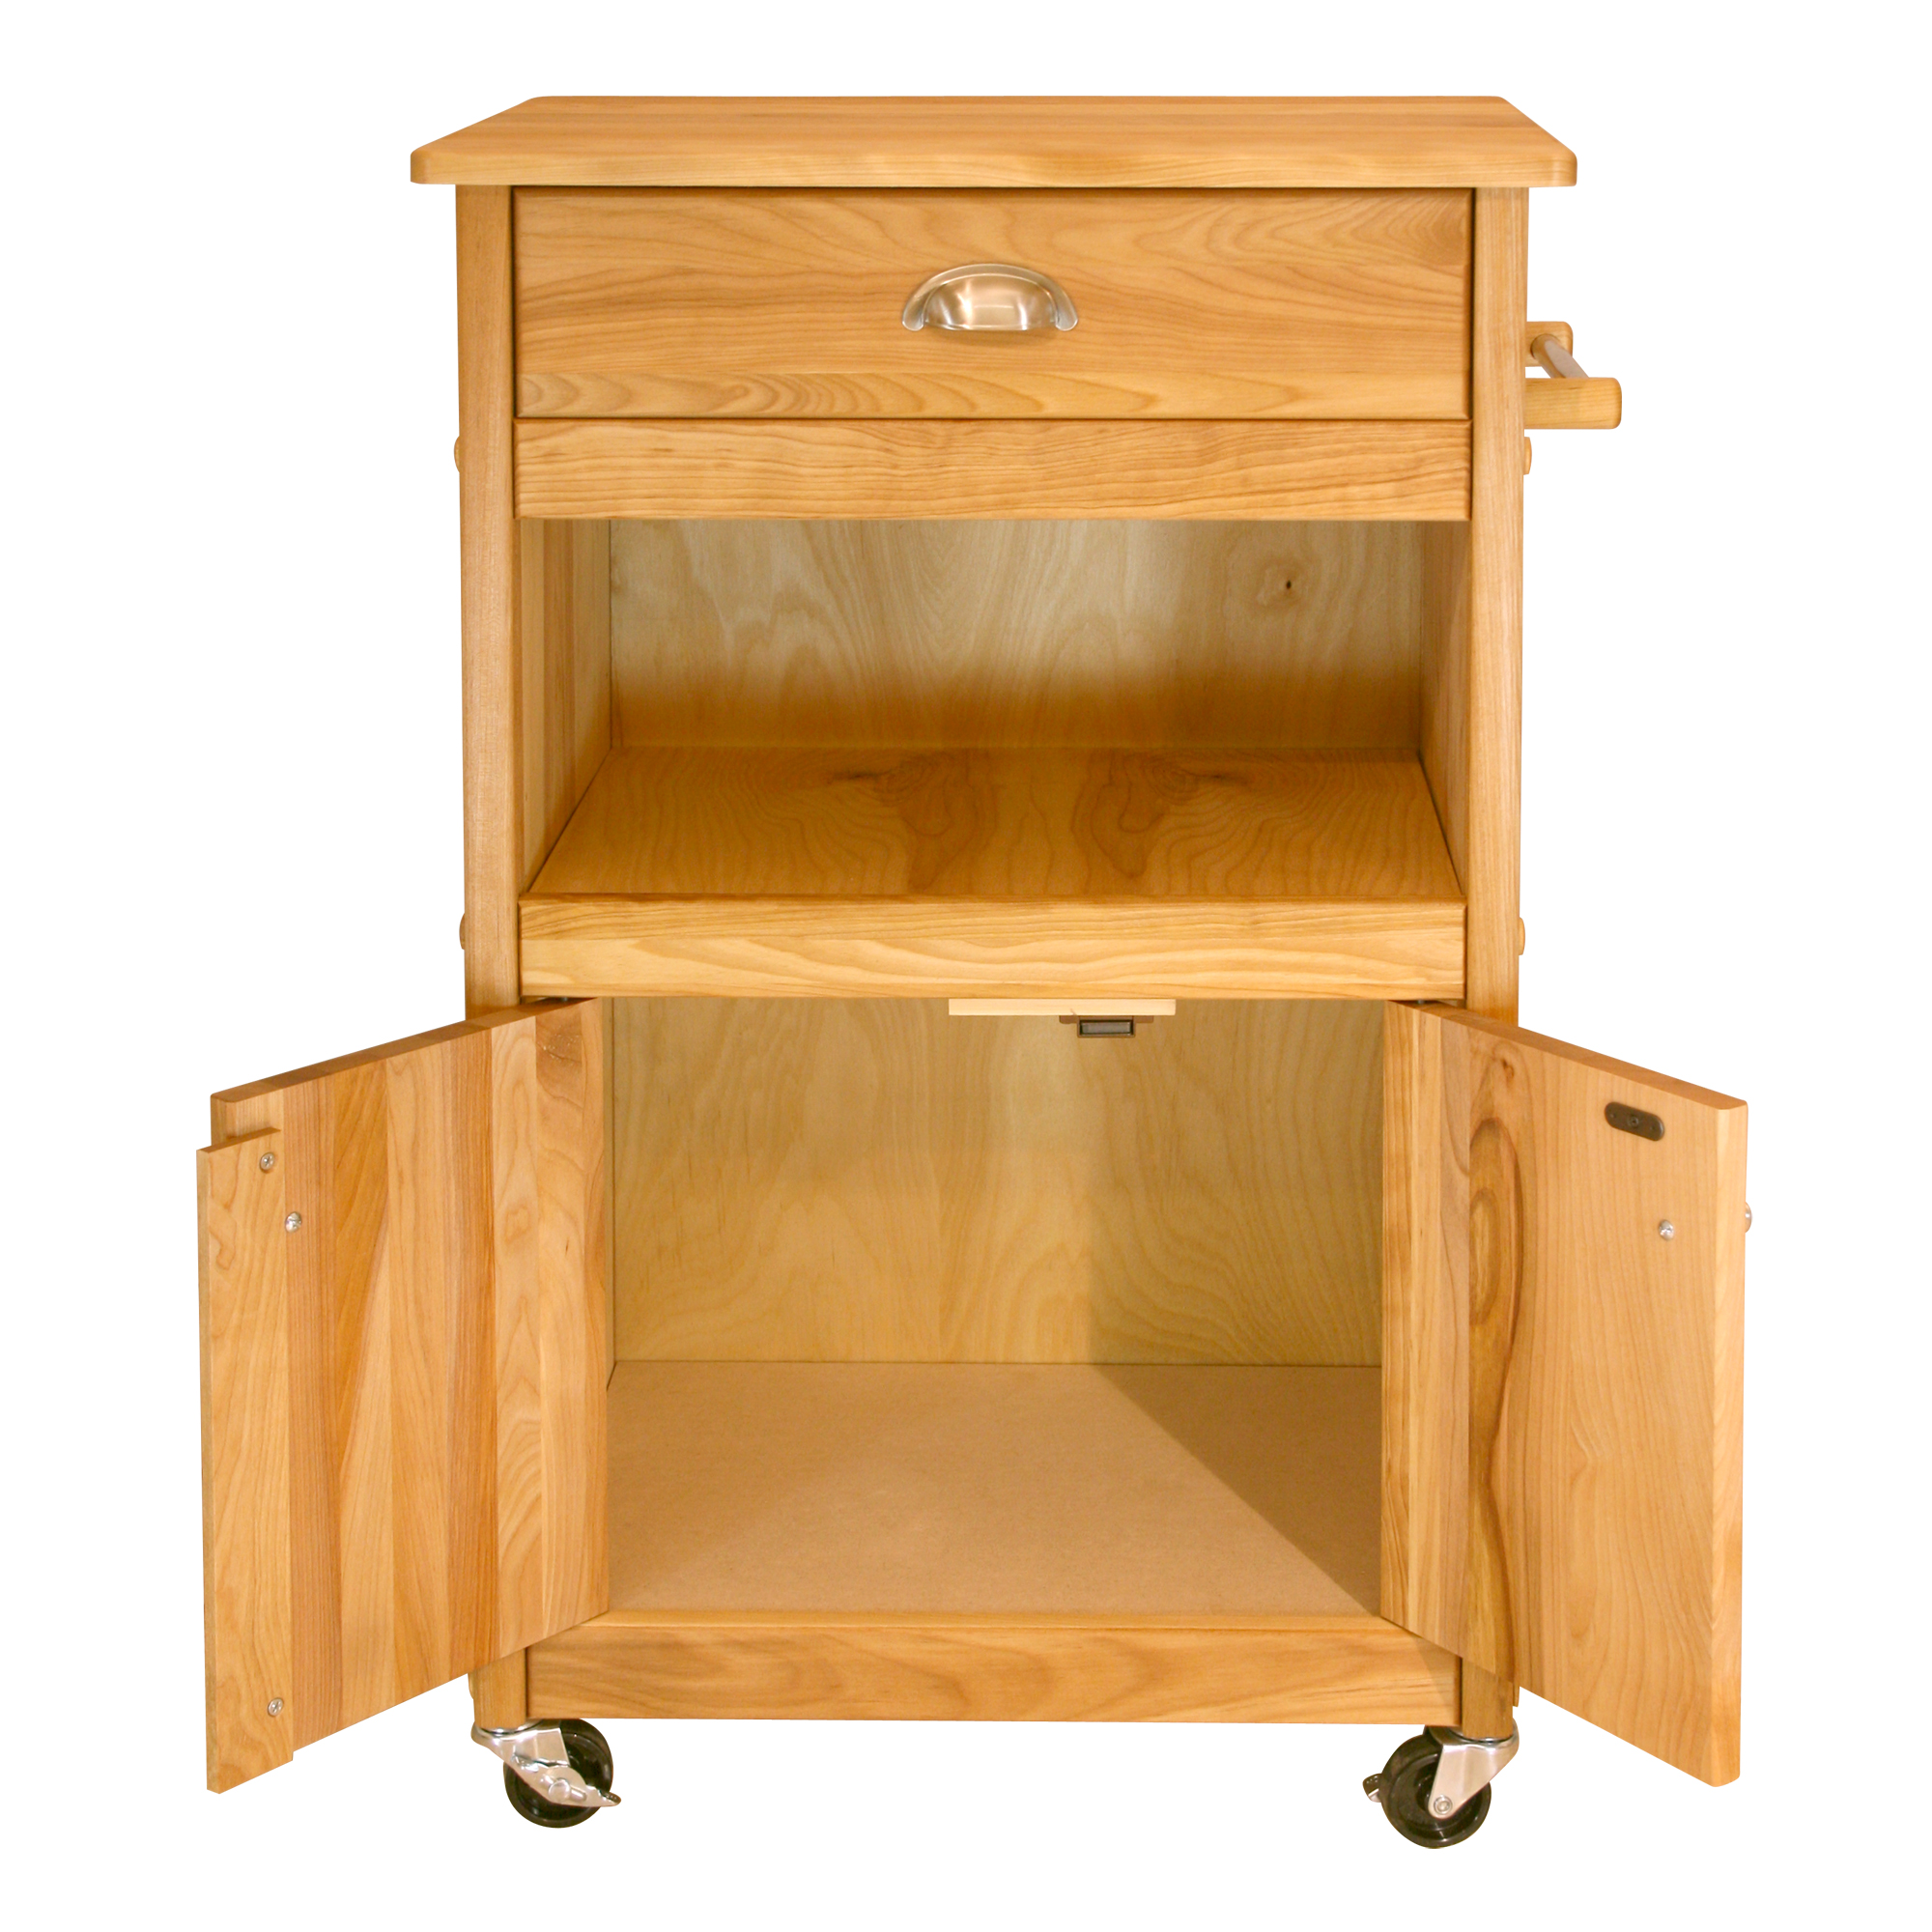 Butcher Block Storage Cart with Drawer, Open Shelf